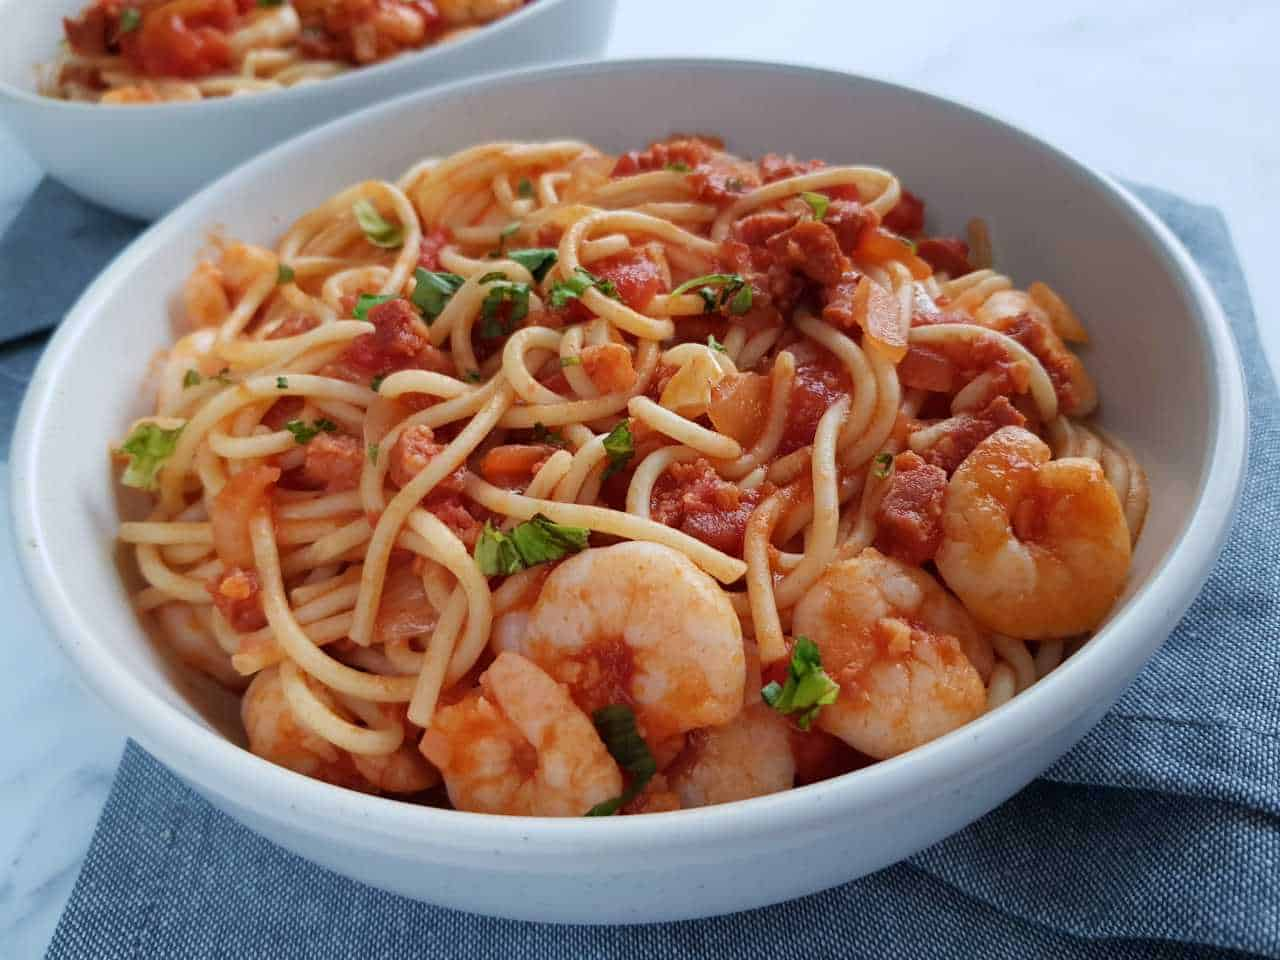 Prawn and chorizo pasta in a white bowl on a gray table cloth.